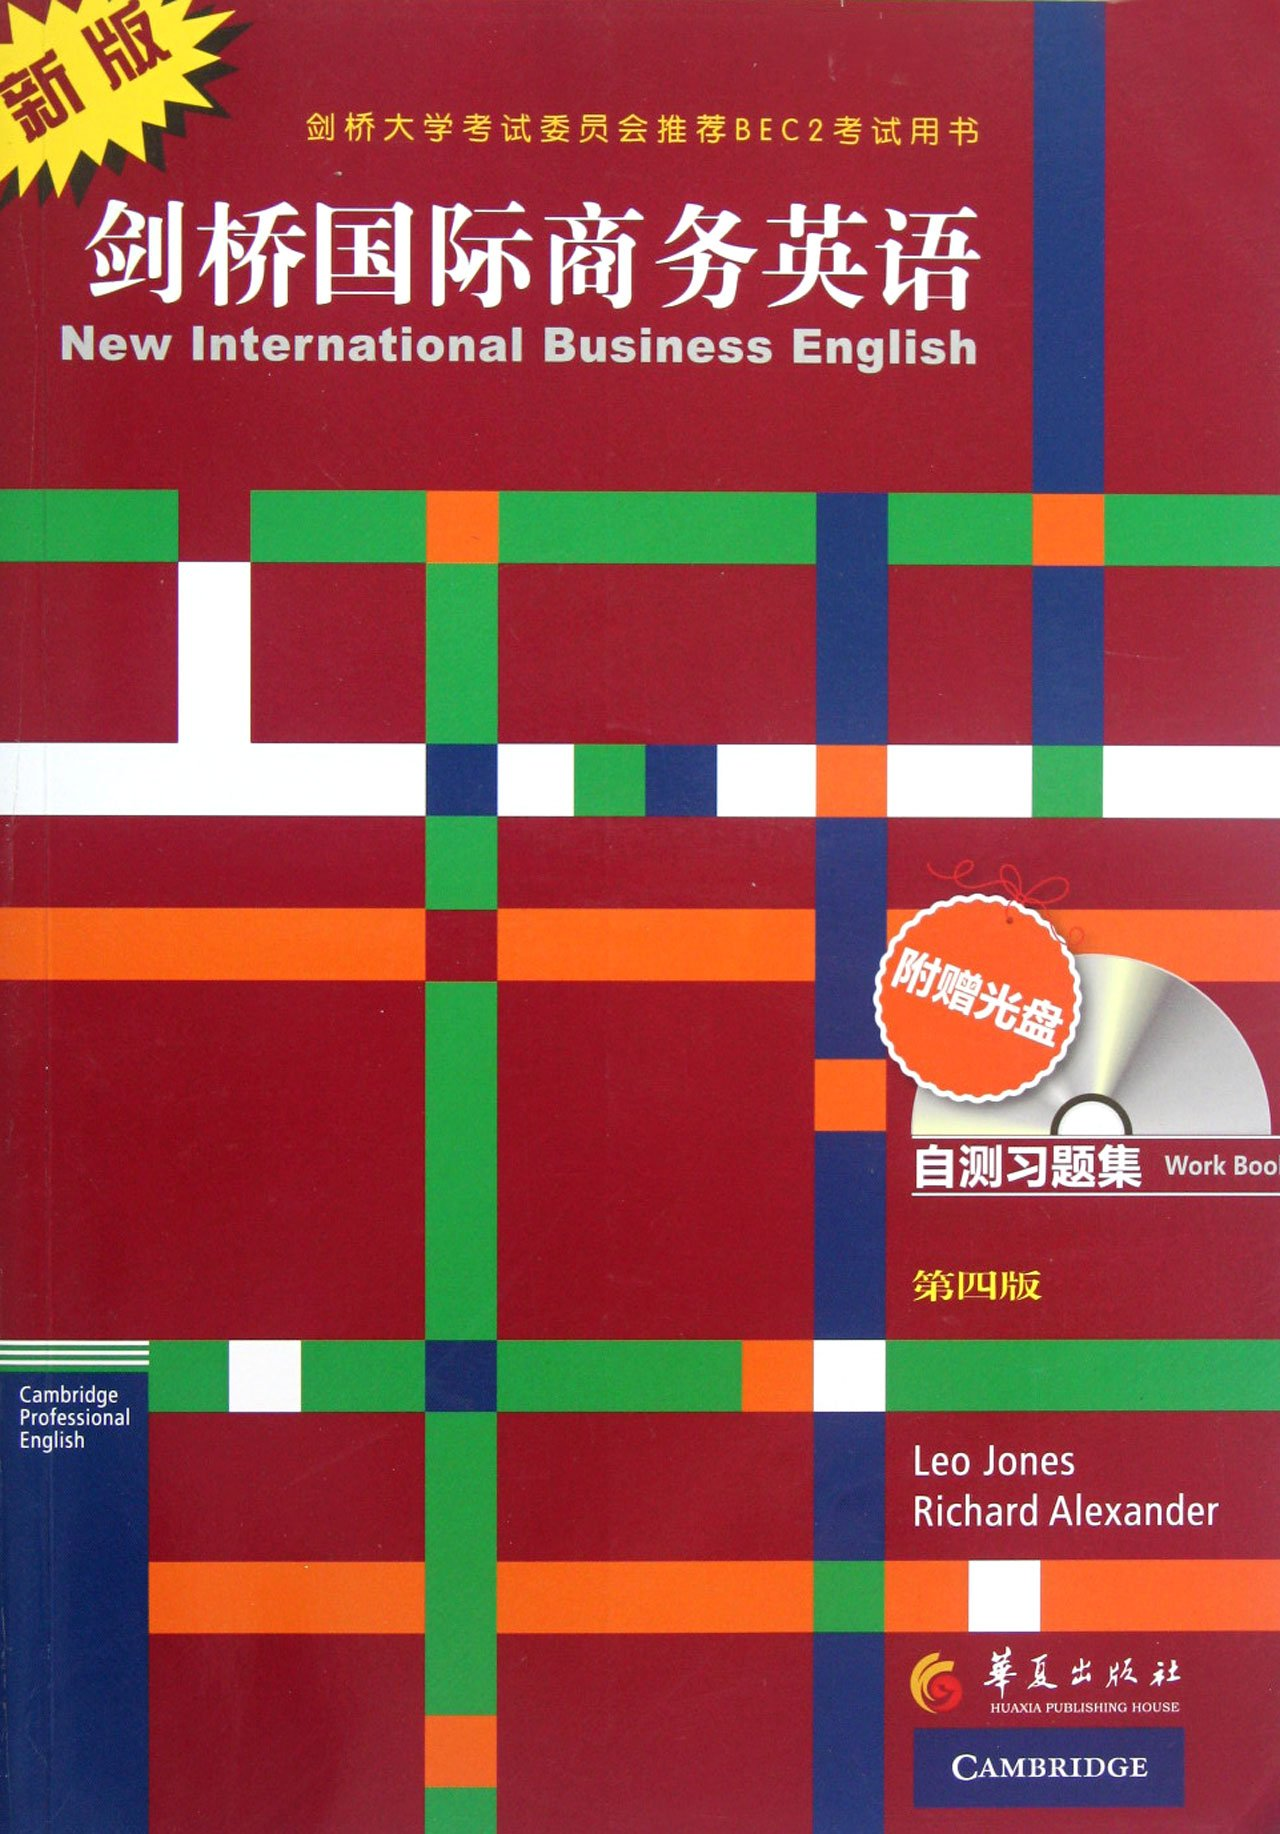 Download New Version of Cambridge English for International Business - Self Test Problem Sets- Fourth Edition -  with CD (Chinese Edition) pdf